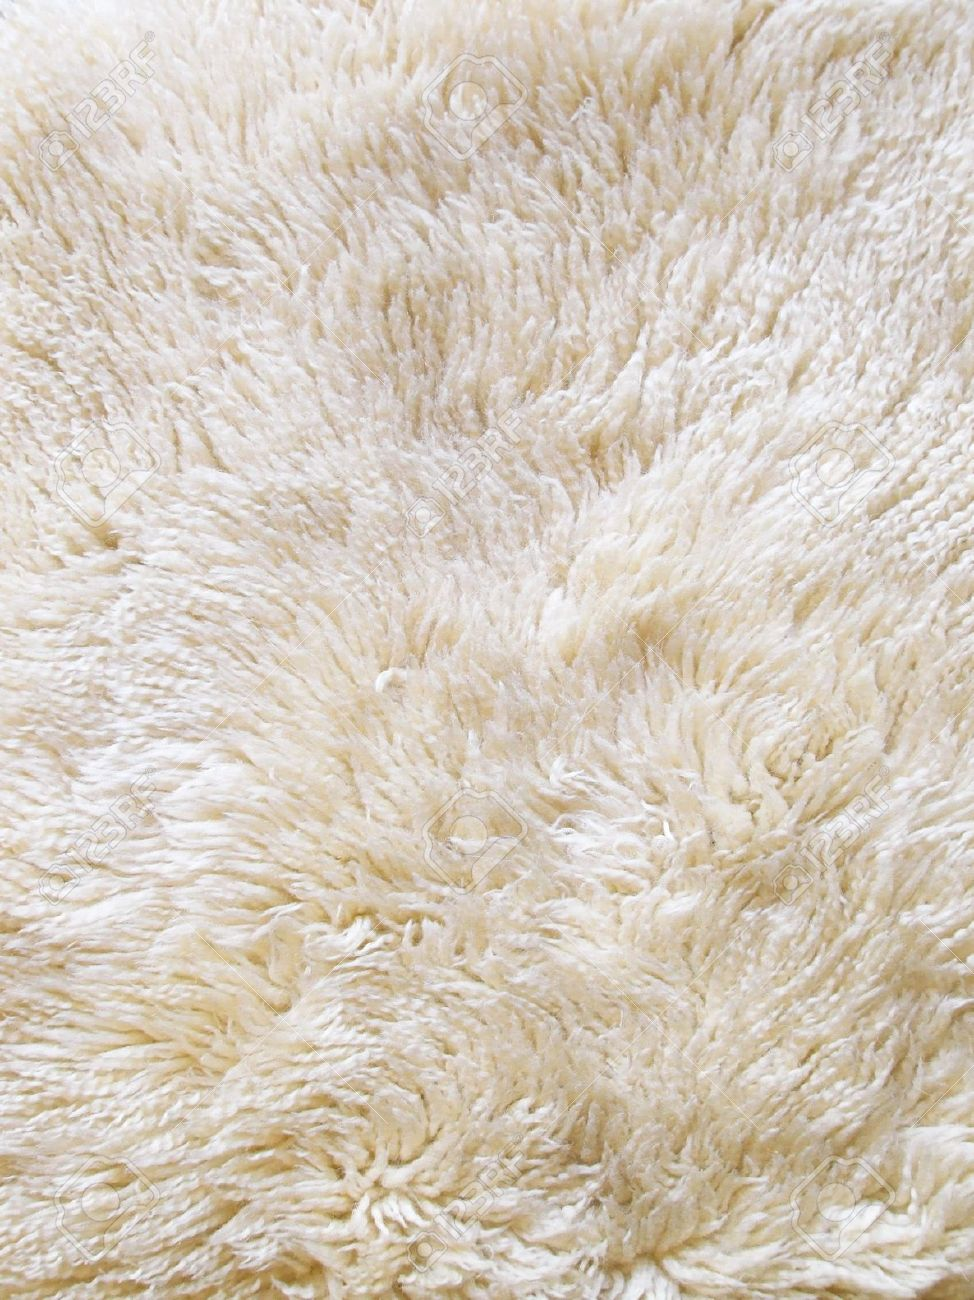 white fur rug texture. the wool texture of a fluffy sheepsking rug stock photo - 8071258 white fur